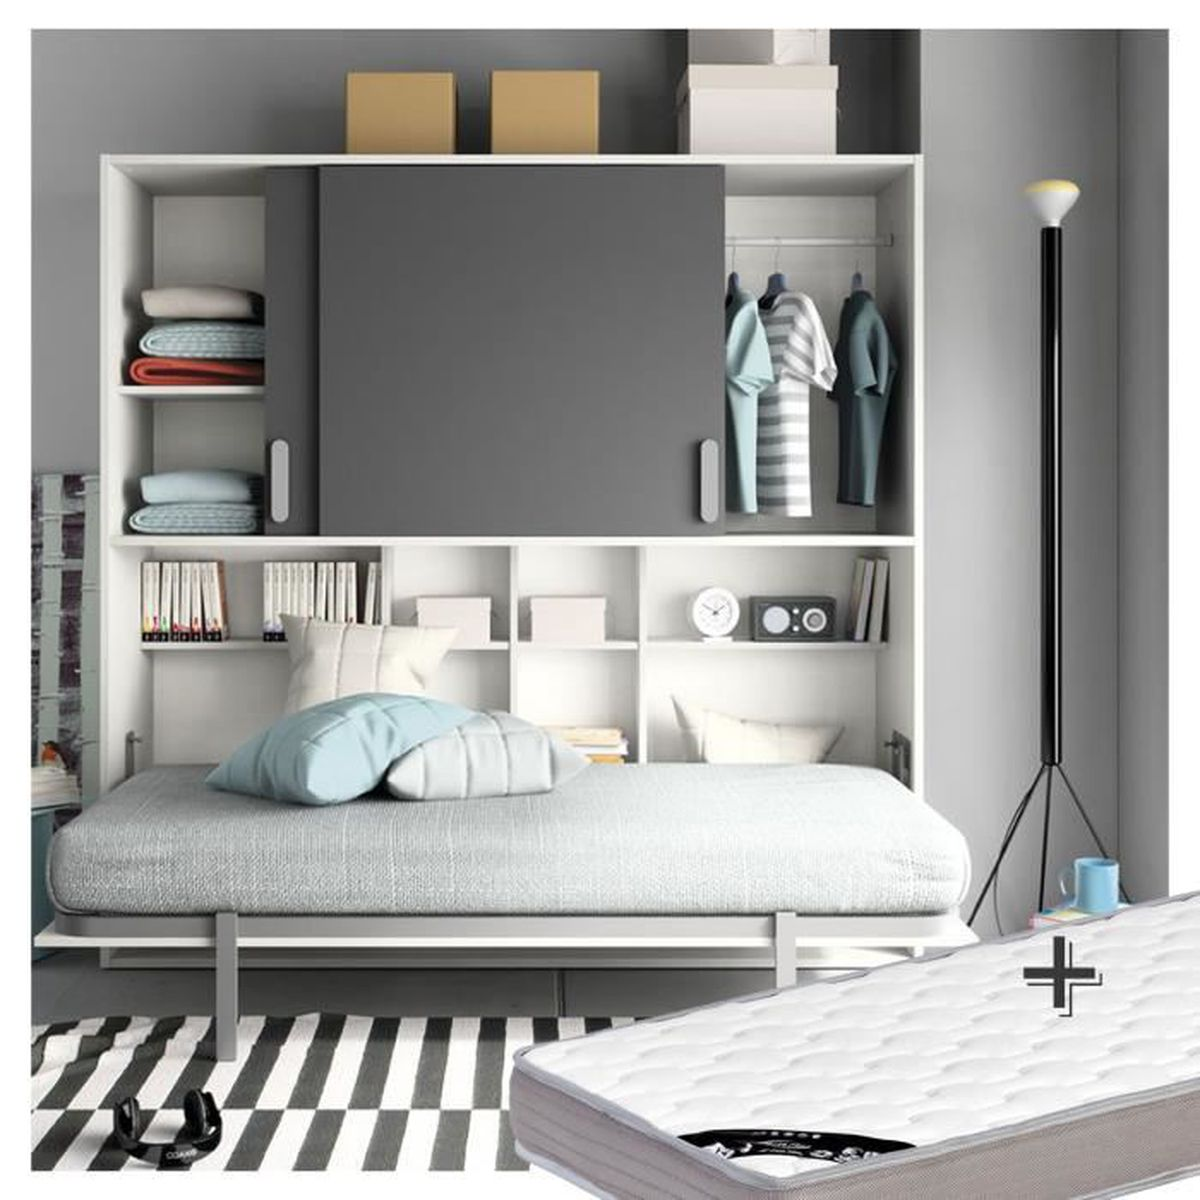 lit abattant 90x190 matelas blanc anthracite achat vente lit escamotable lit abattant. Black Bedroom Furniture Sets. Home Design Ideas